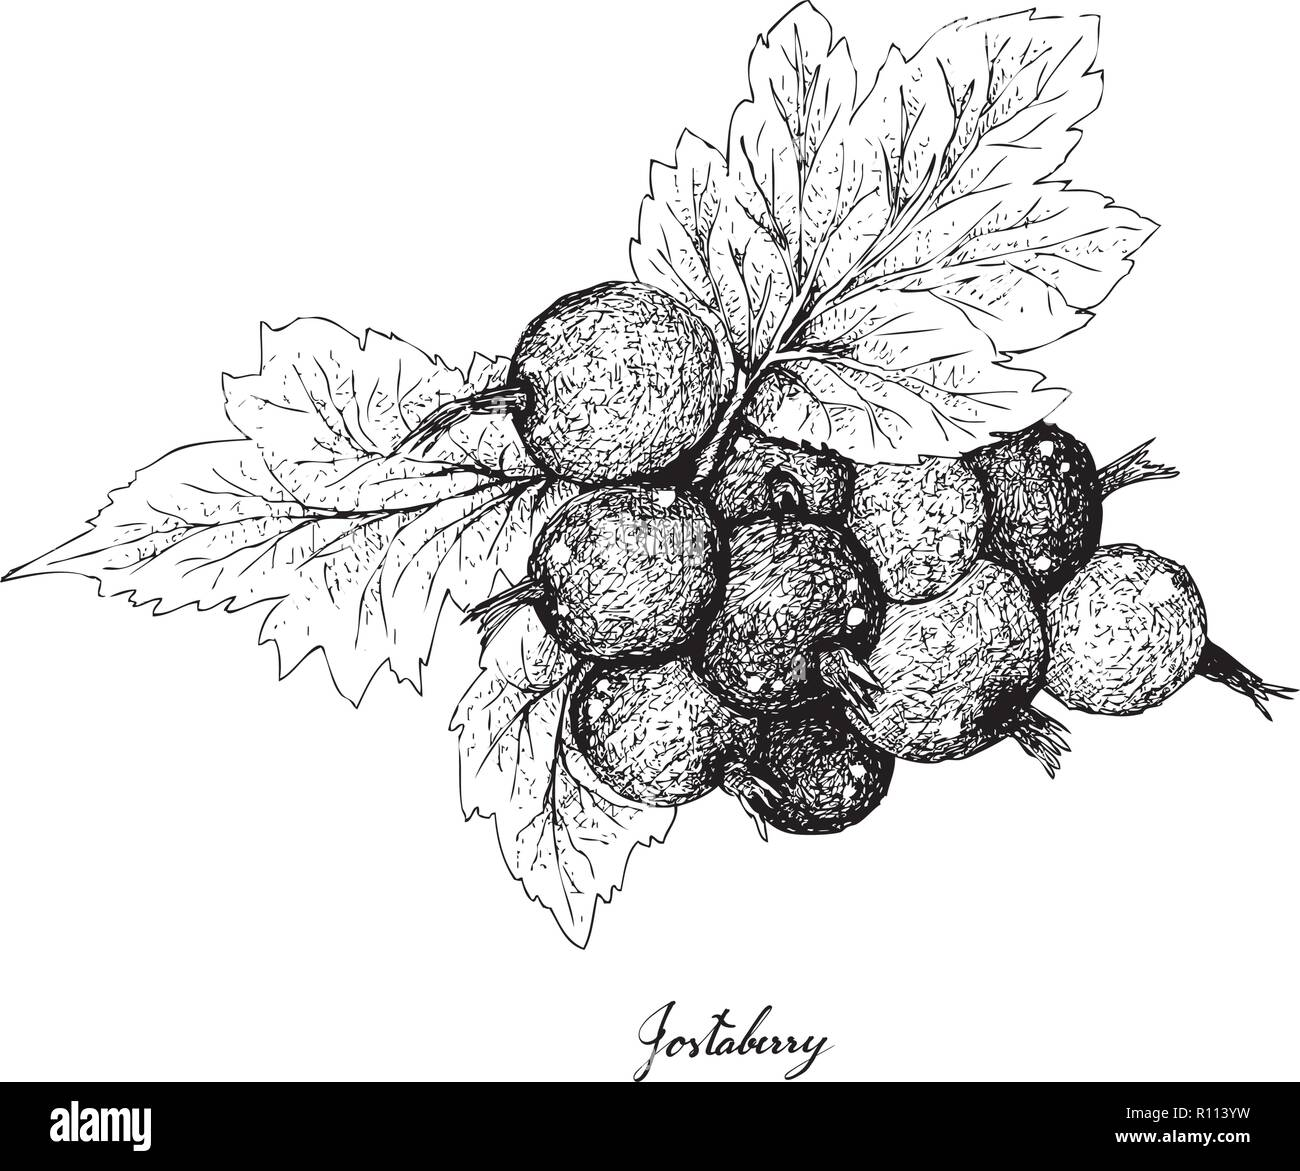 Berry Fruit, Illustration Hand Drawn Sketch of Jostaberries Isolated on White Background. High in Vitamin C and Minerals with Essential Nutrient for L - Stock Vector